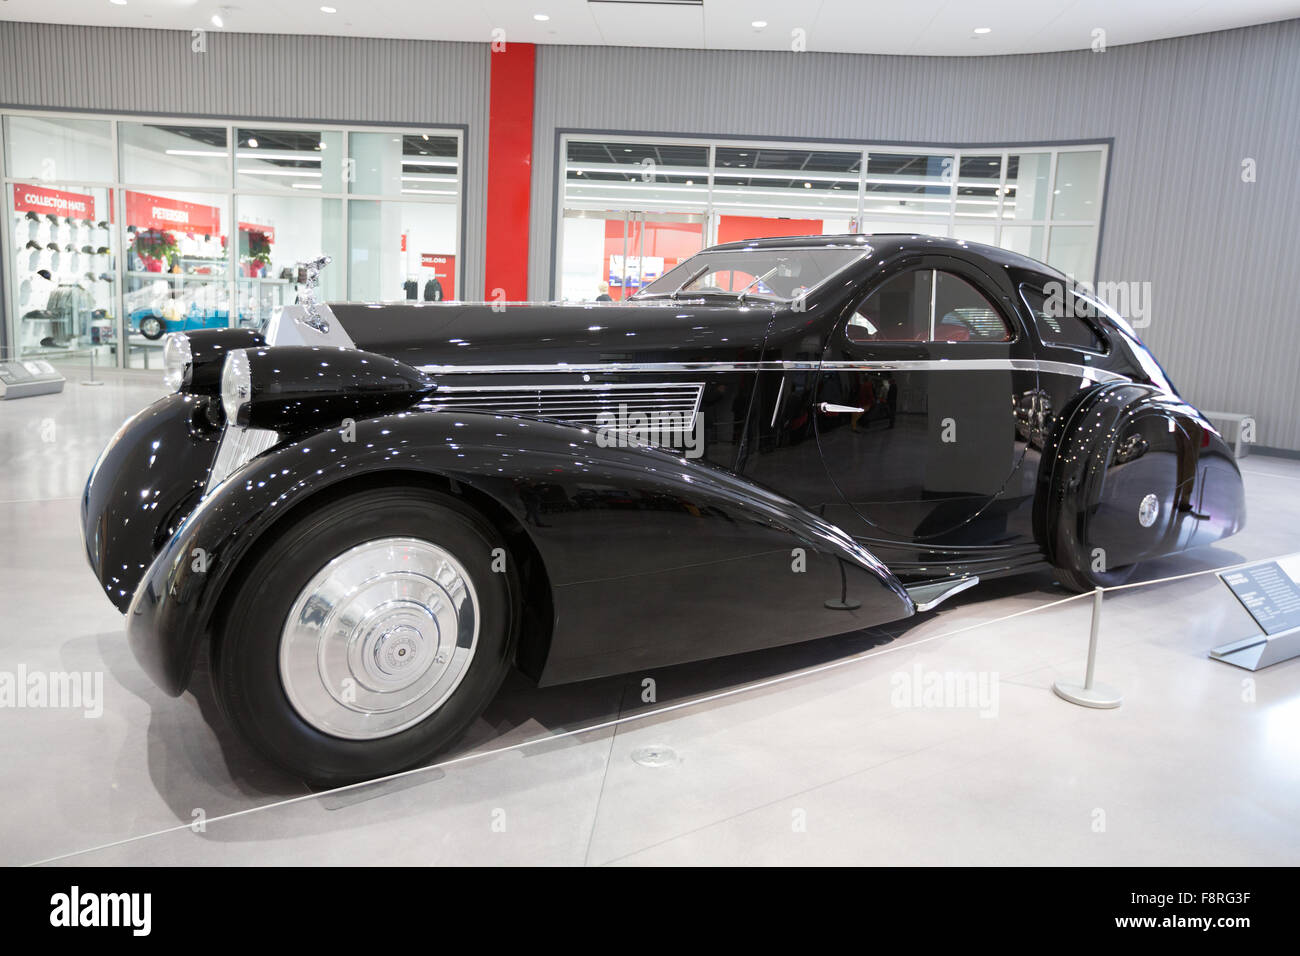 The Round Door Rolls a 1925 Rolls Royce Phantom I Aerodynamic Coupe re-bodied with round doors by Jonckheere in 1934 on displa & The Round Door Rolls a 1925 Rolls Royce Phantom I Aerodynamic Coupe ...